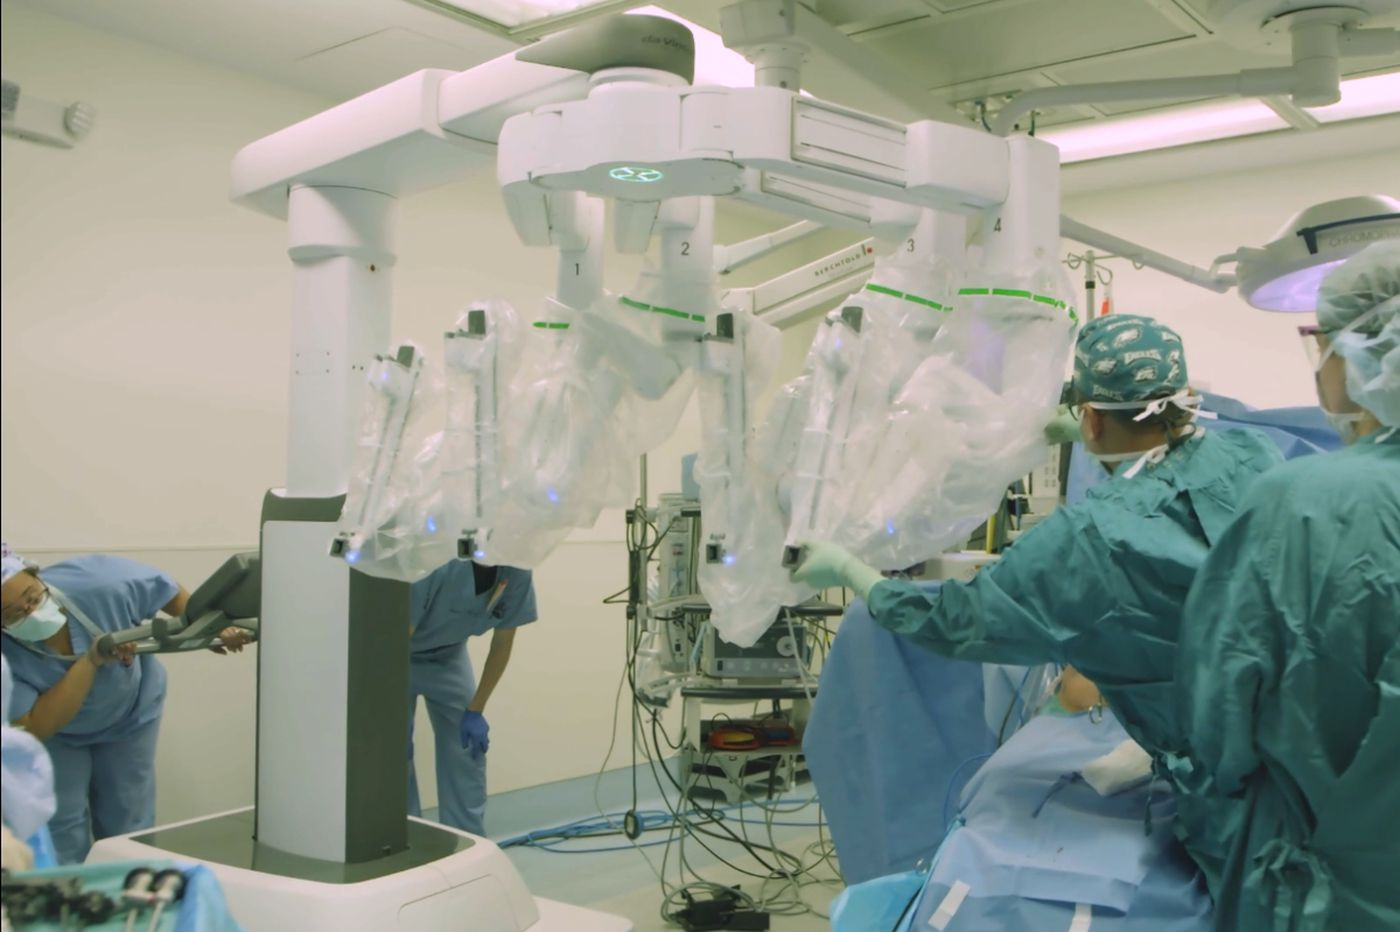 As surgeons tout robot-assisted breast cancer surgeries, safety remains a question